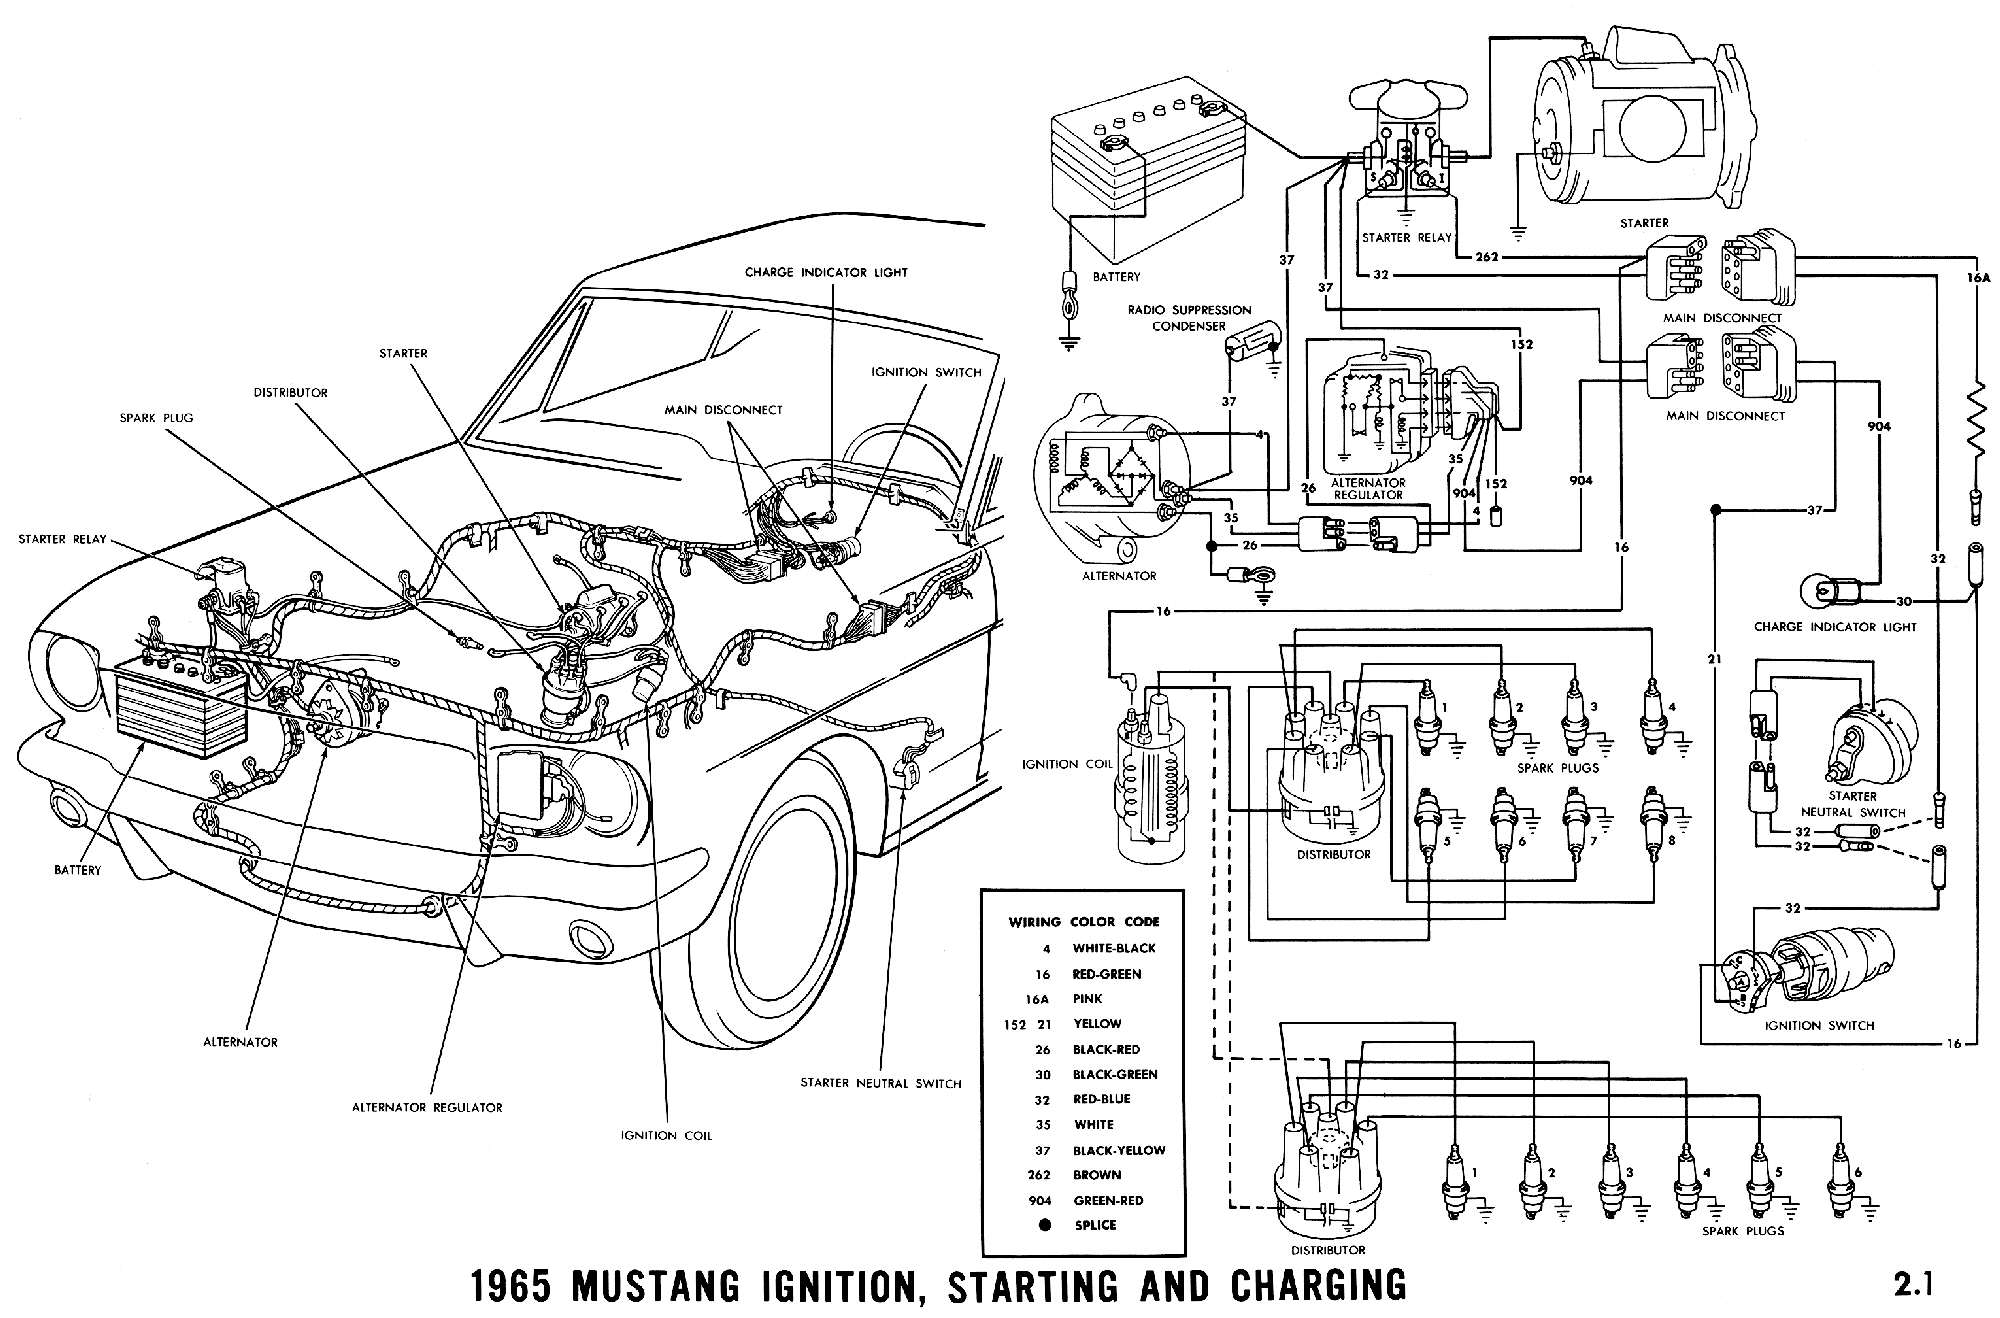 1988 Mustang Wiring Harness | Wiring Diagram on 1988 mustang frame, 1988 mustang fuel pump fuse, 1988 mustang starter, 1988 mustang thermostat, 1988 mustang motor, 1988 mustang manual diagram, 1988 mustang wiring repair manual, 98 mustang fuse box diagram, 1988 mustang radio wiring, 1988 mustang ignition switch, 1988 mustang fuse box diagram, 1988 mustang alternator, 1988 mustang turn signals, 1988 mustang suspension, 1988 mustang parts, mustang 5.0 vacuum diagram, ford mustang diagram, 1988 mustang wheels, 1988 mustang seats,